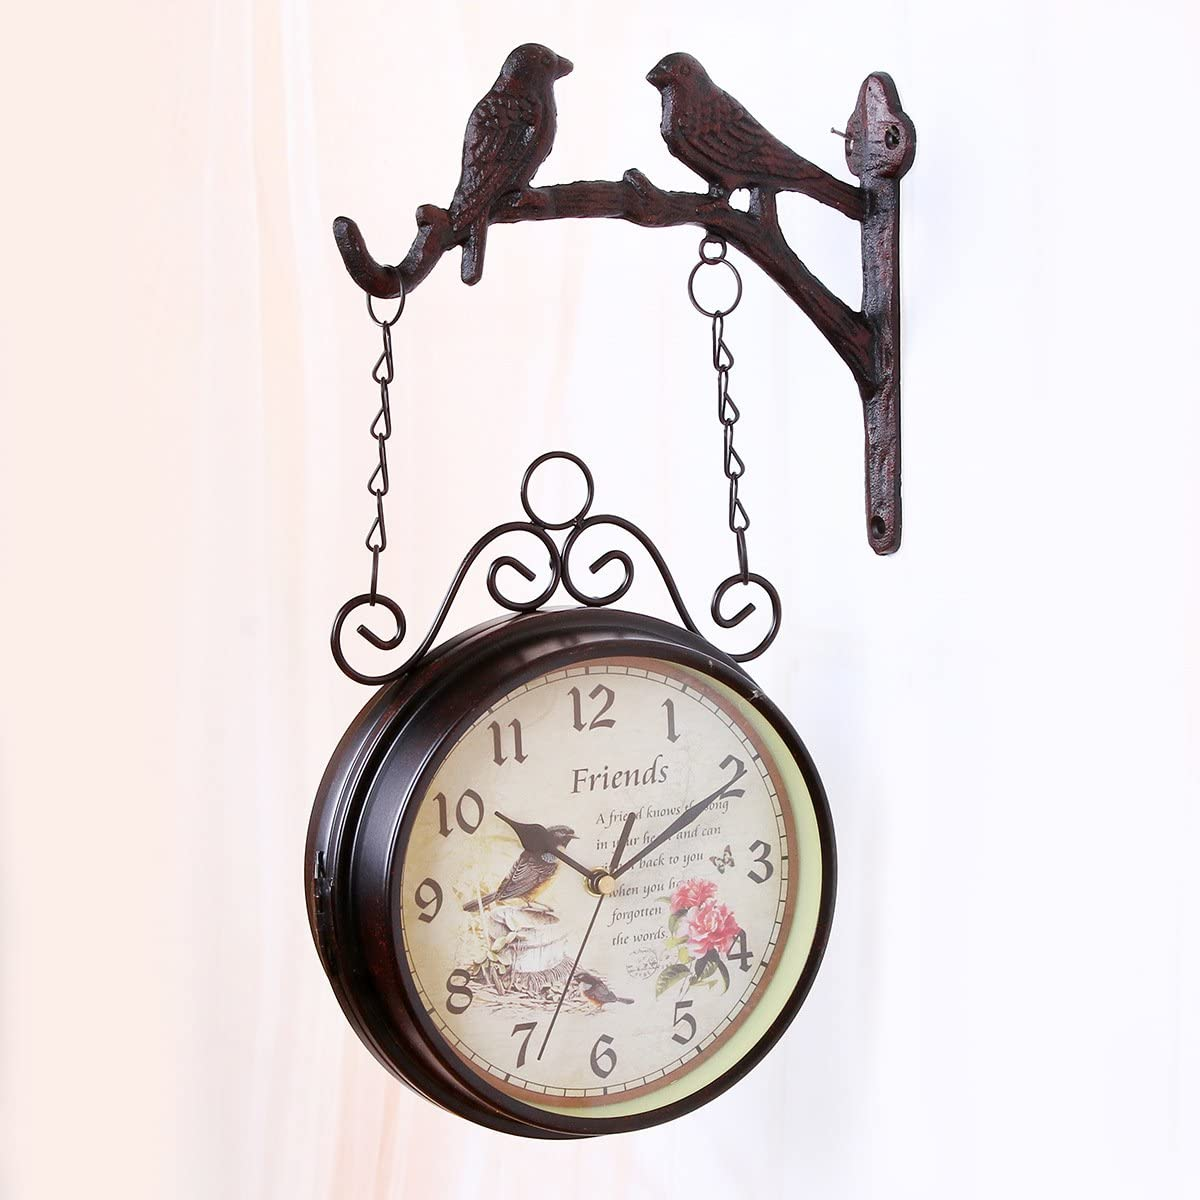 Two Sided Design Silent Clock for Garden Outdoor Home Silent Non-Ticking Wall Mounted Clock Outdoor Garden Clock Bracket Clock